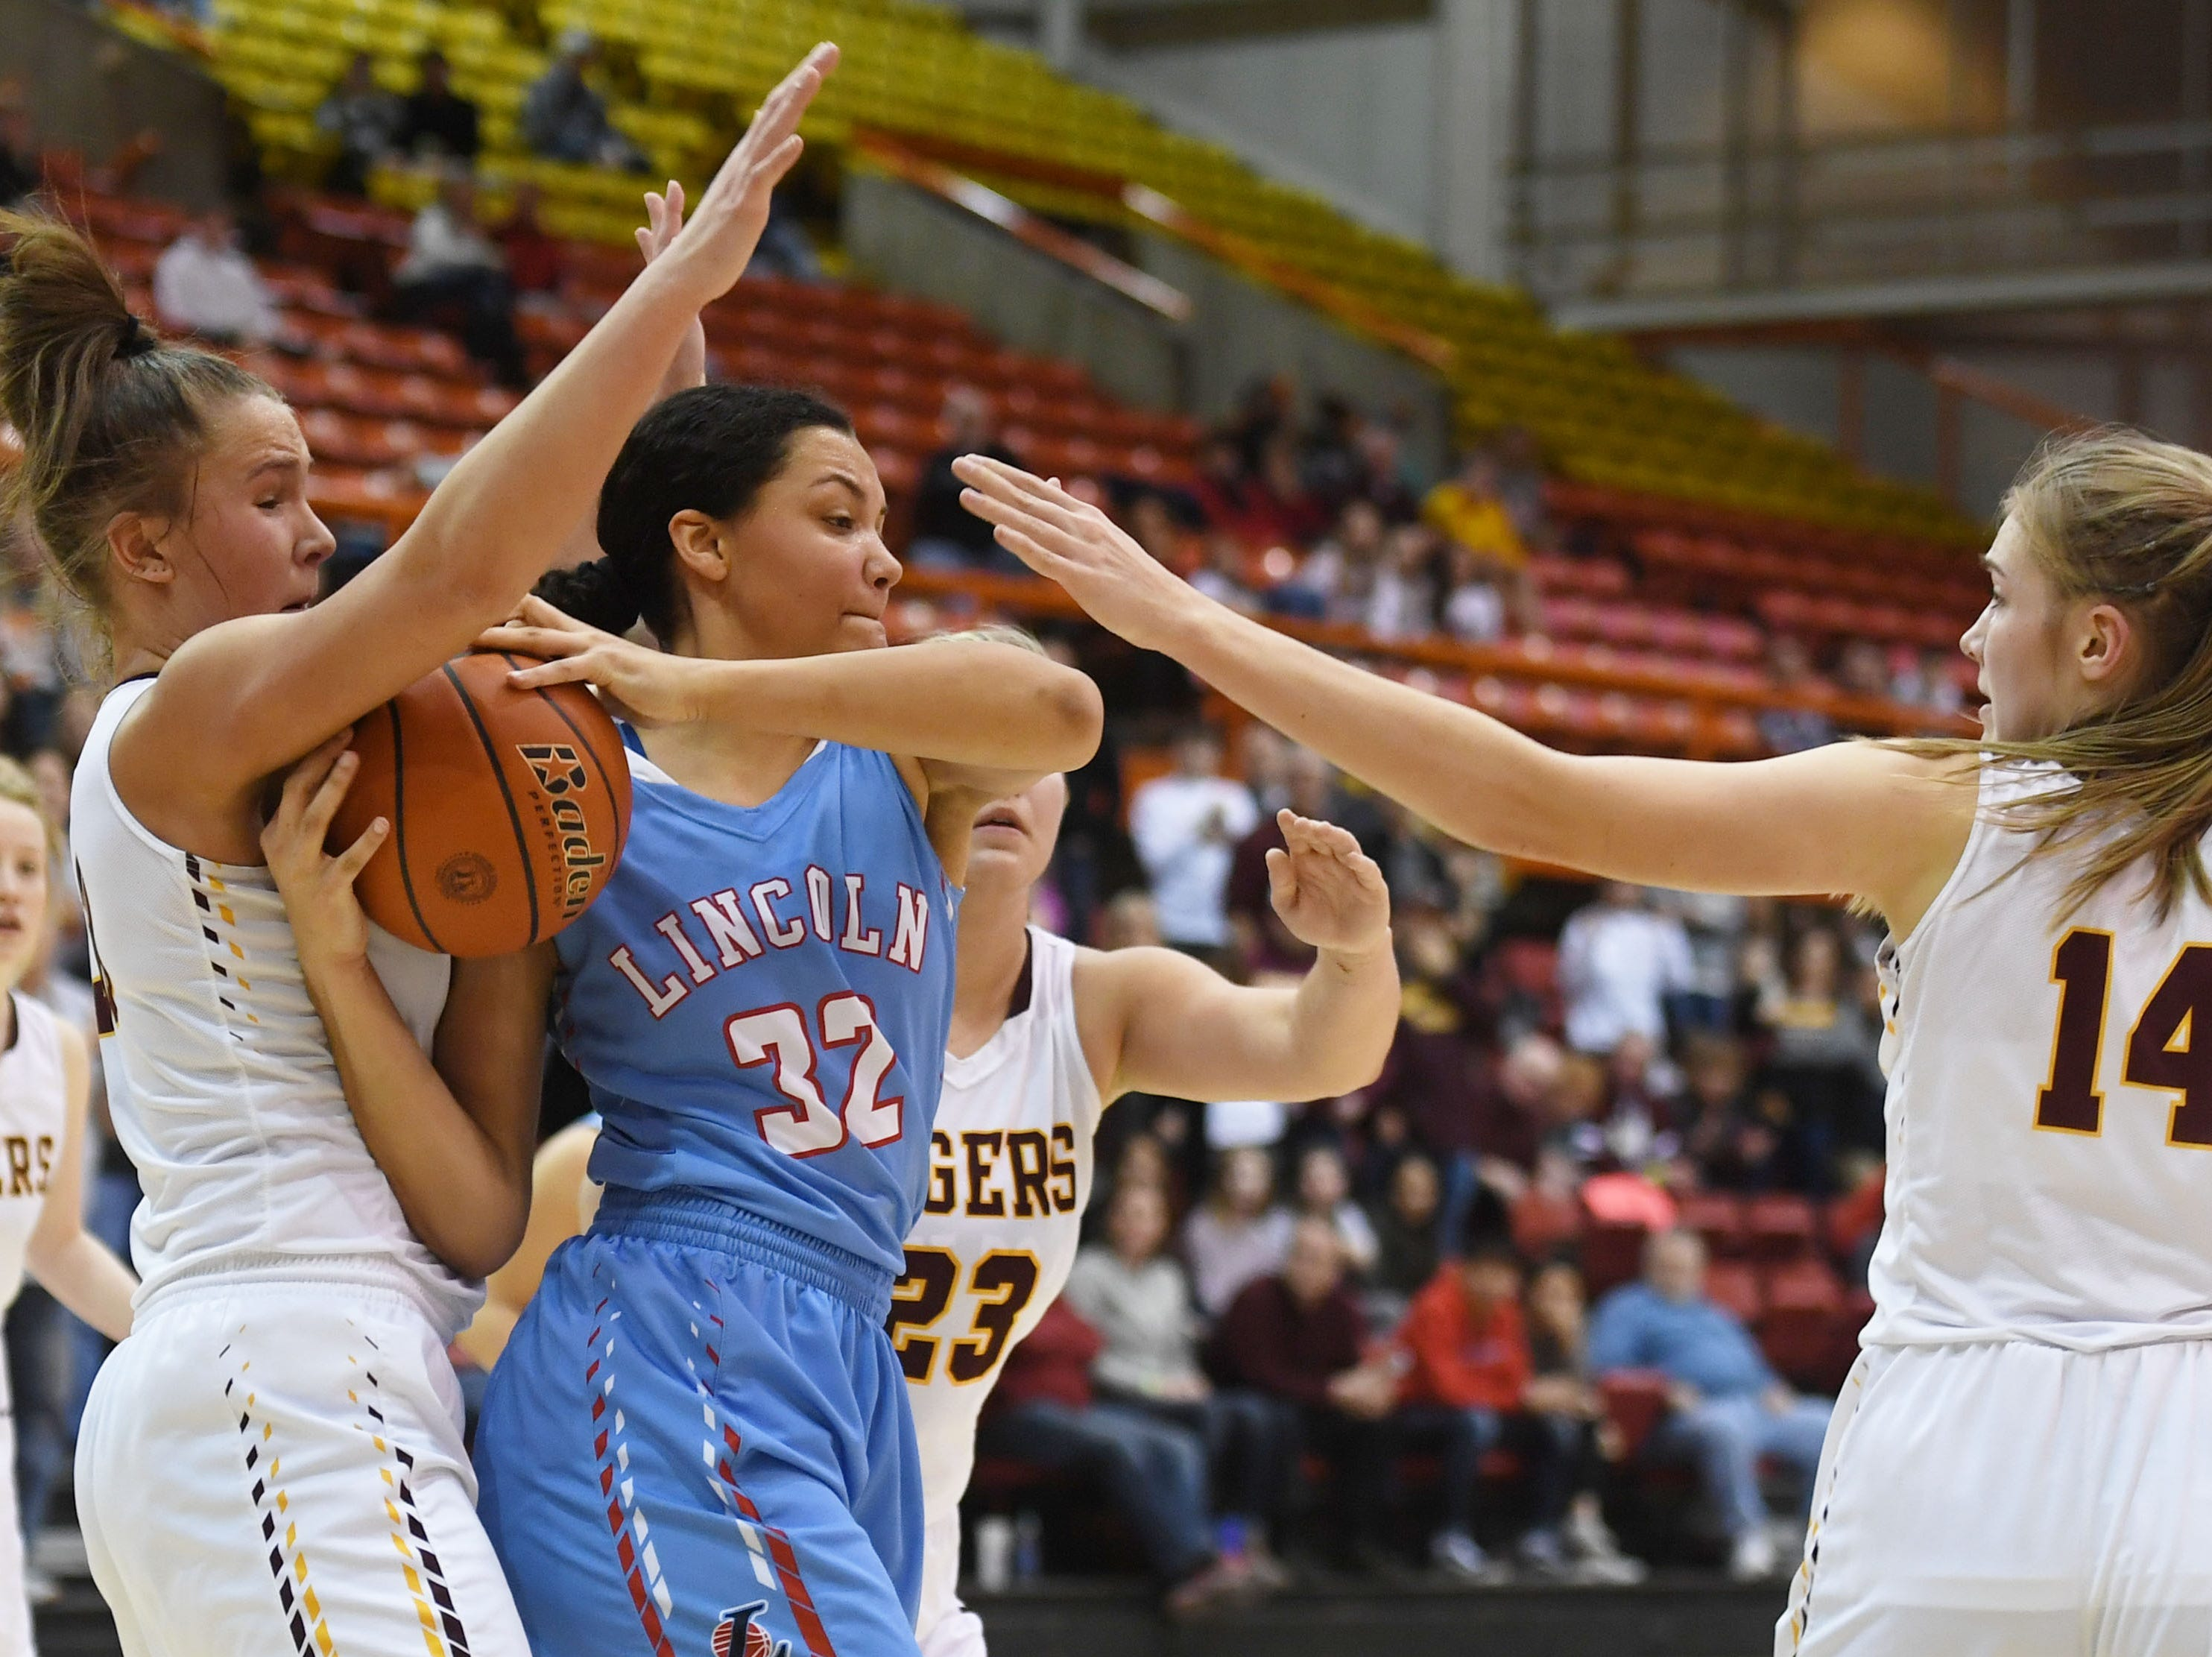 Lincoln's Sydnaya Dunn goes against Harrisburg defense during the game in the Class AA semifinals Thursday, March 15, in Rapid City.